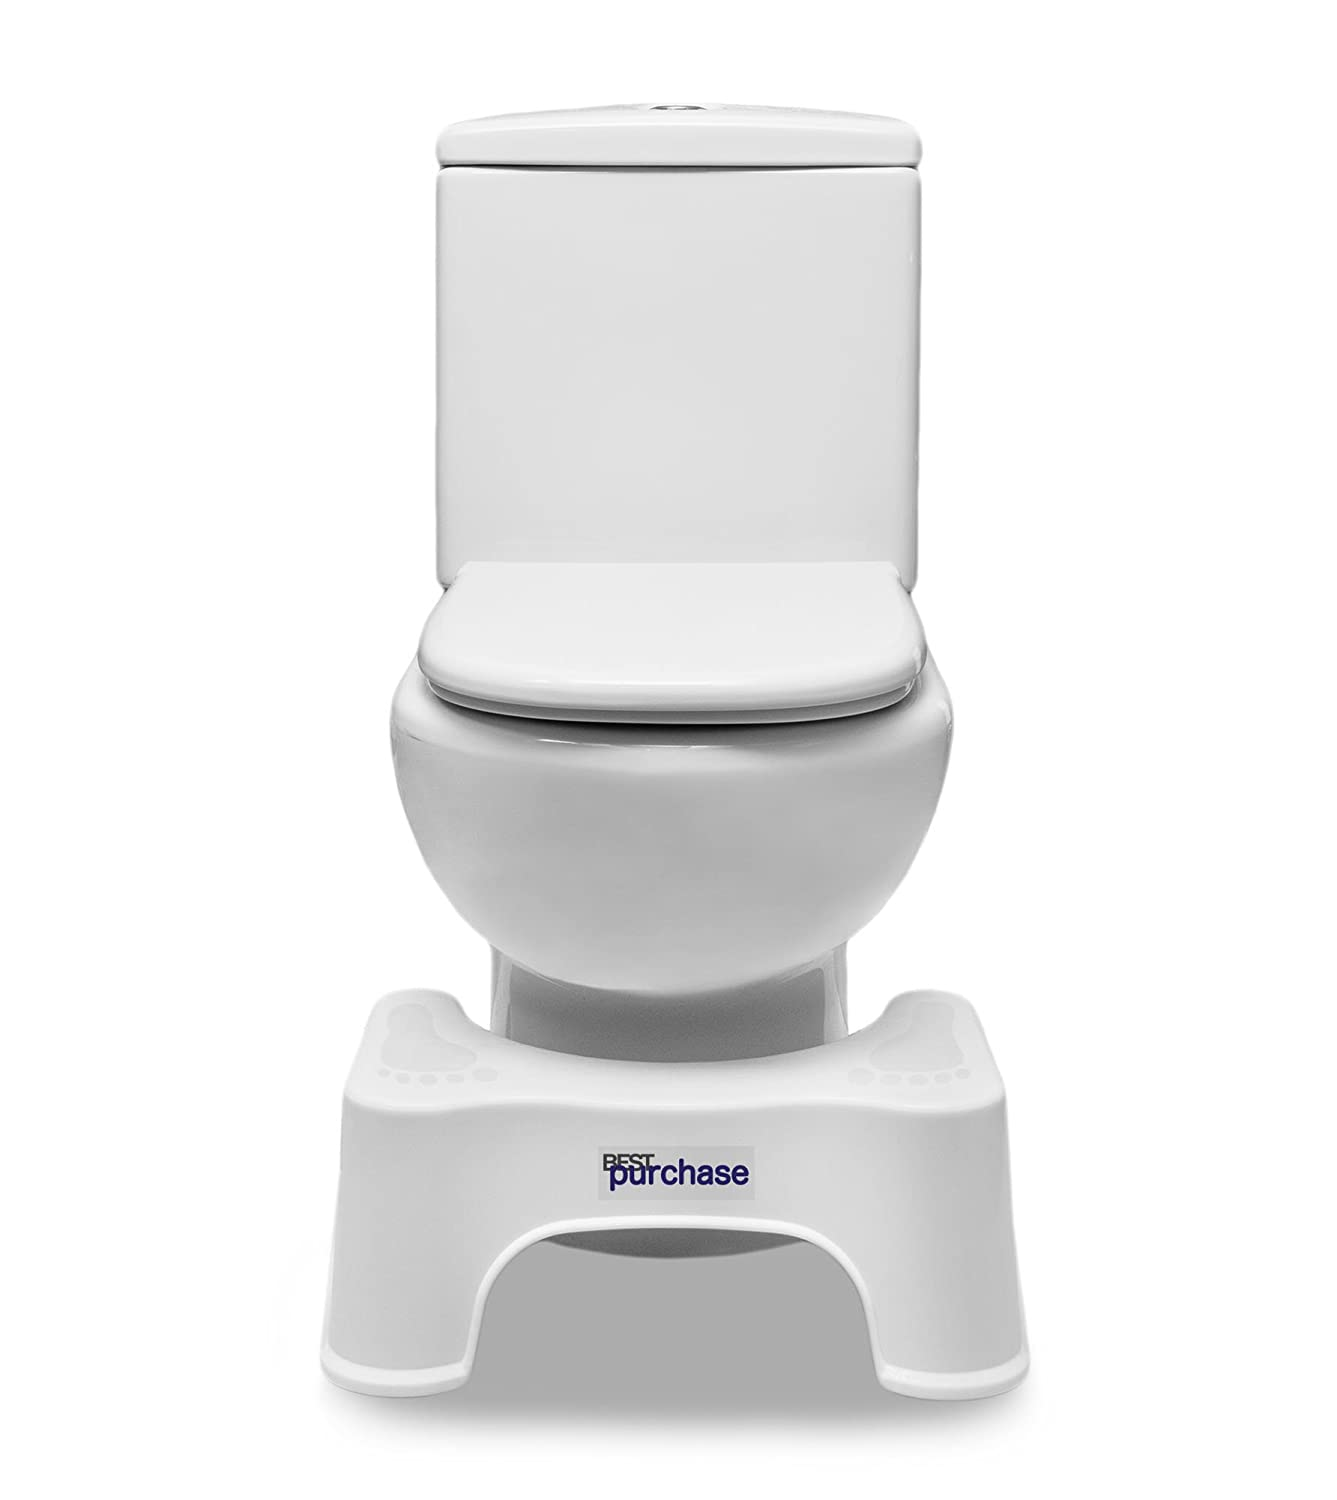 Physiologischer Hocker für die Toilette | medizinischer | Schwangerer Badhocker | Badezimmerhocker | Toilettenhocker | Fußhocker | Anti-Verstopfung Hocker | WC Hocker | Erleichterungshelfer Best Purchase